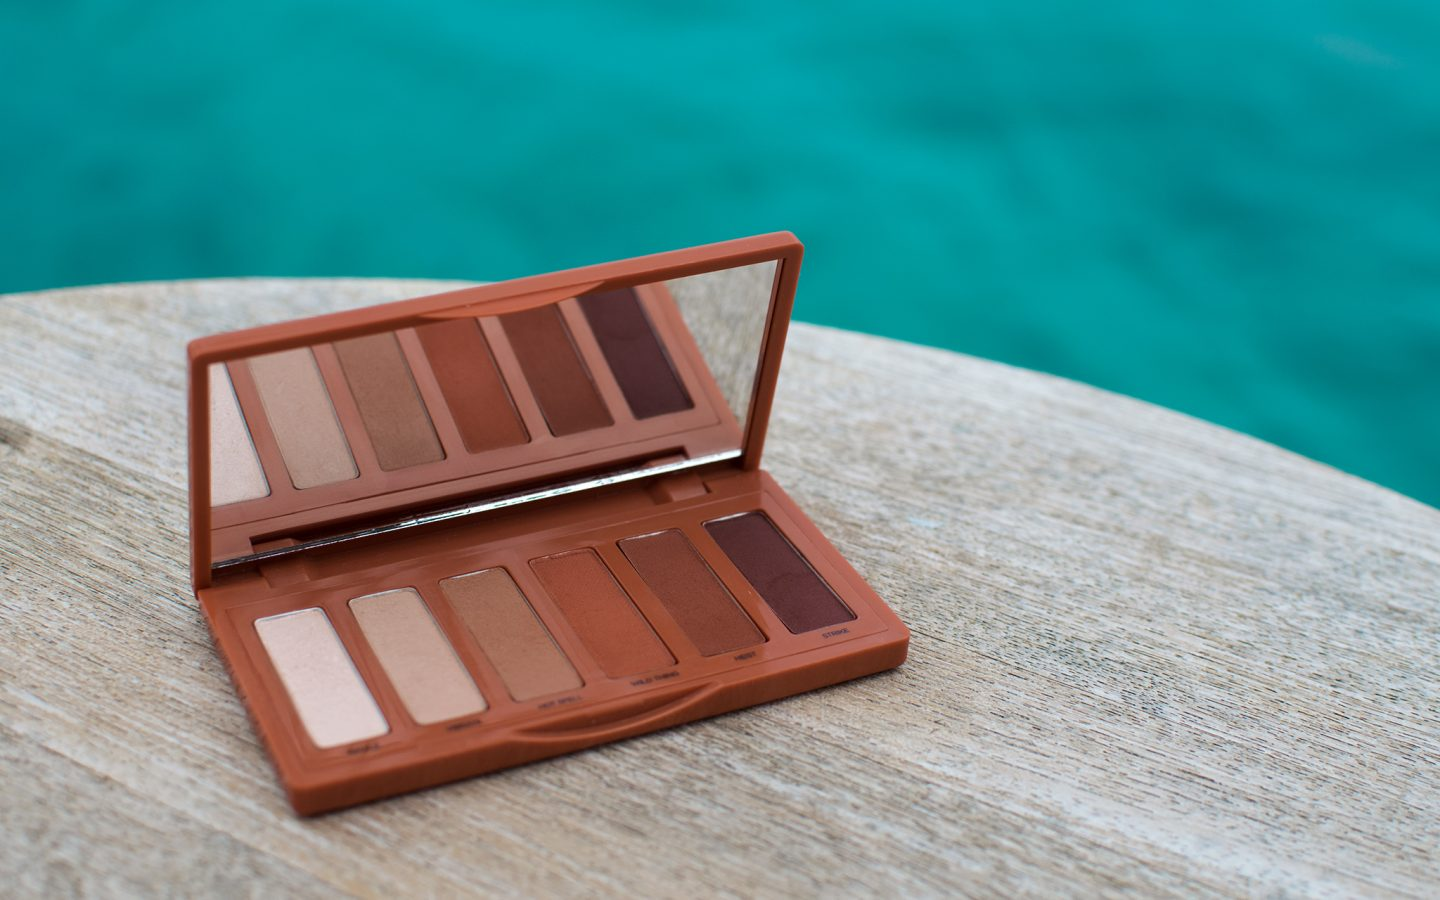 Ocena Urban Decay Naked Petite Heat Eyeshadow Palette